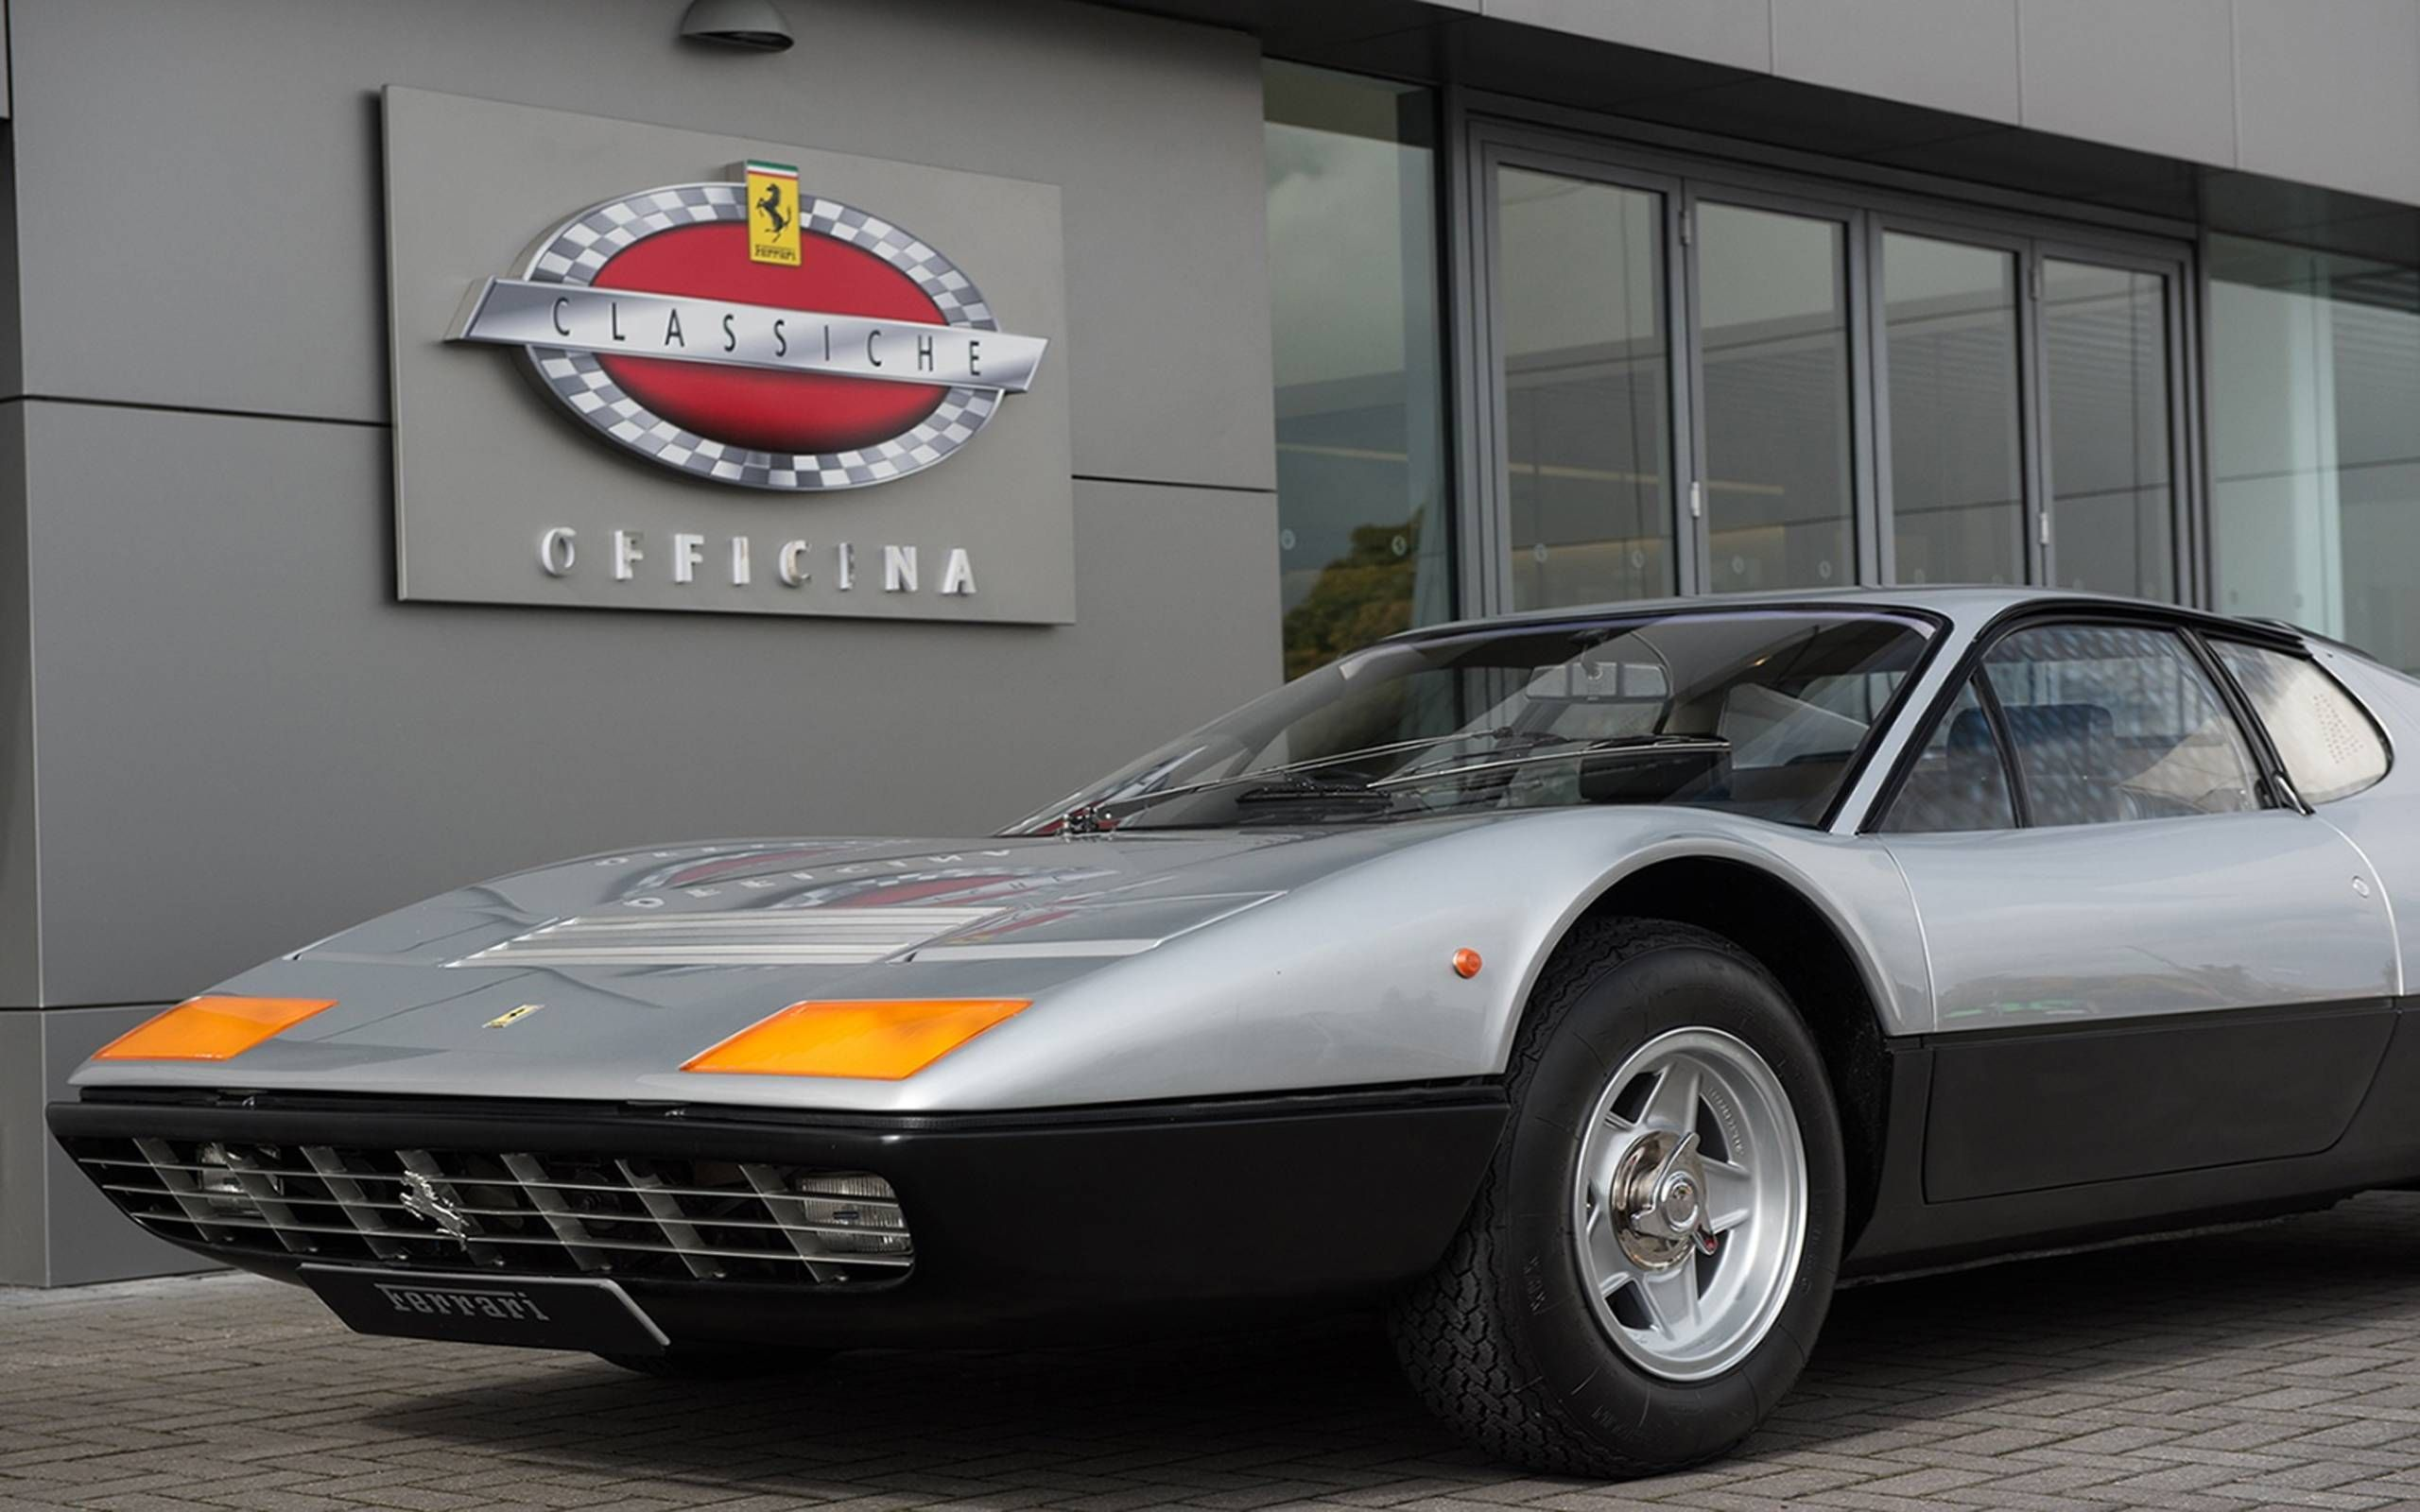 Ferrari Names 48 Workshops Classiche Authorized Did Yours Make The List